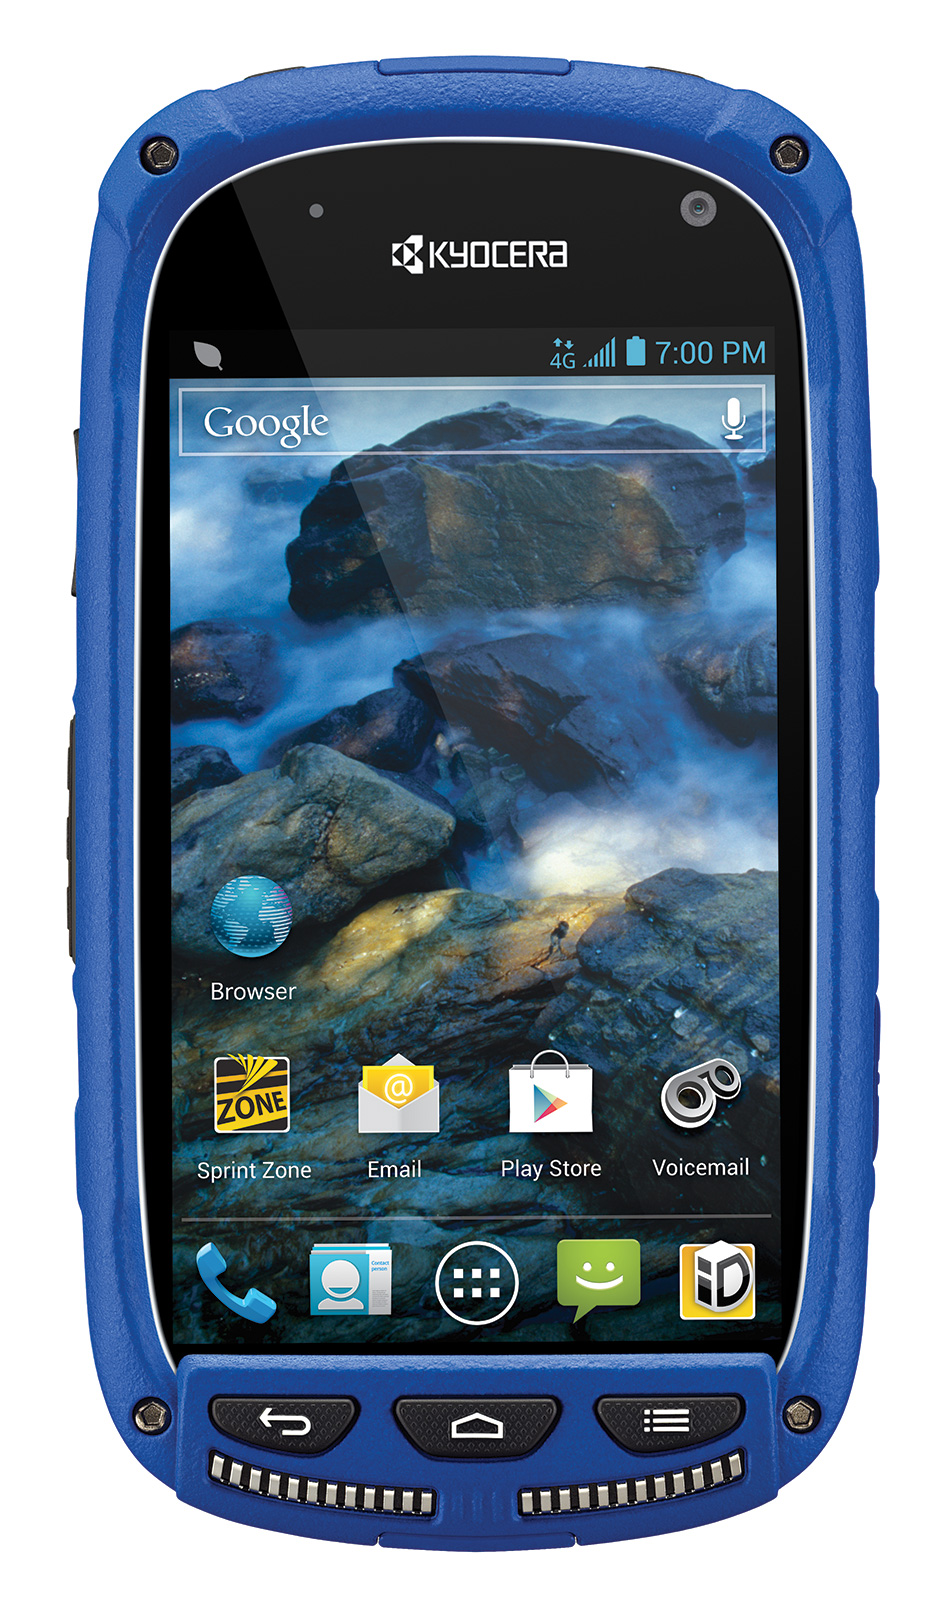 Phone Android Phone Used kyocera torque rugged blue 4g lte android phone sprint excellent sprint